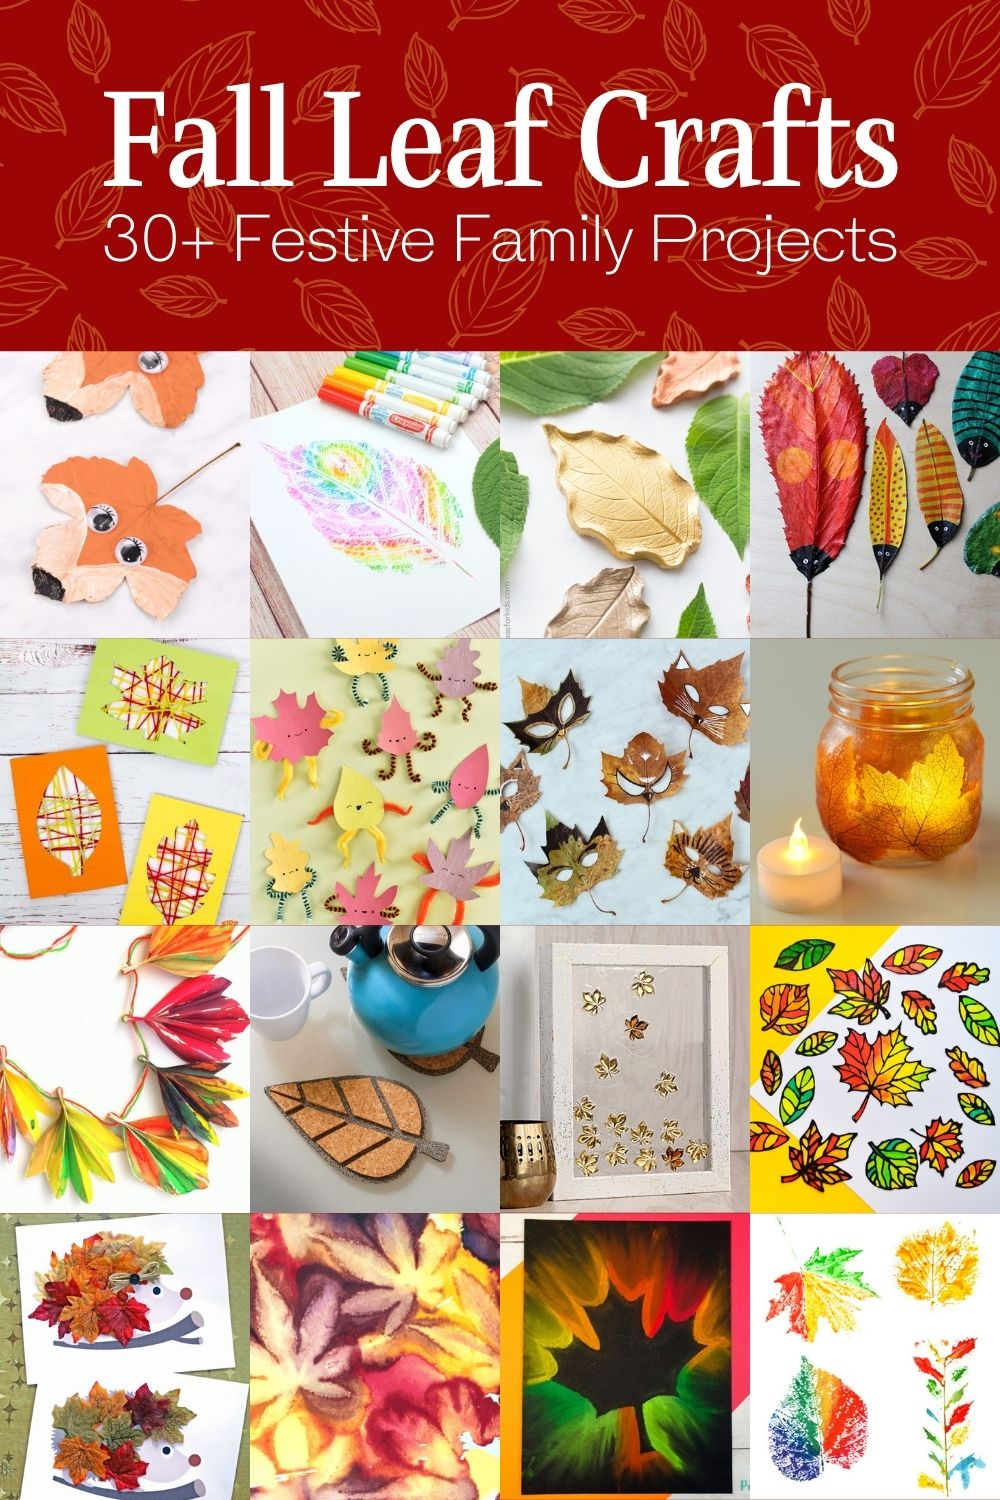 Over 30 Festive Fall Craft Projects for the Family